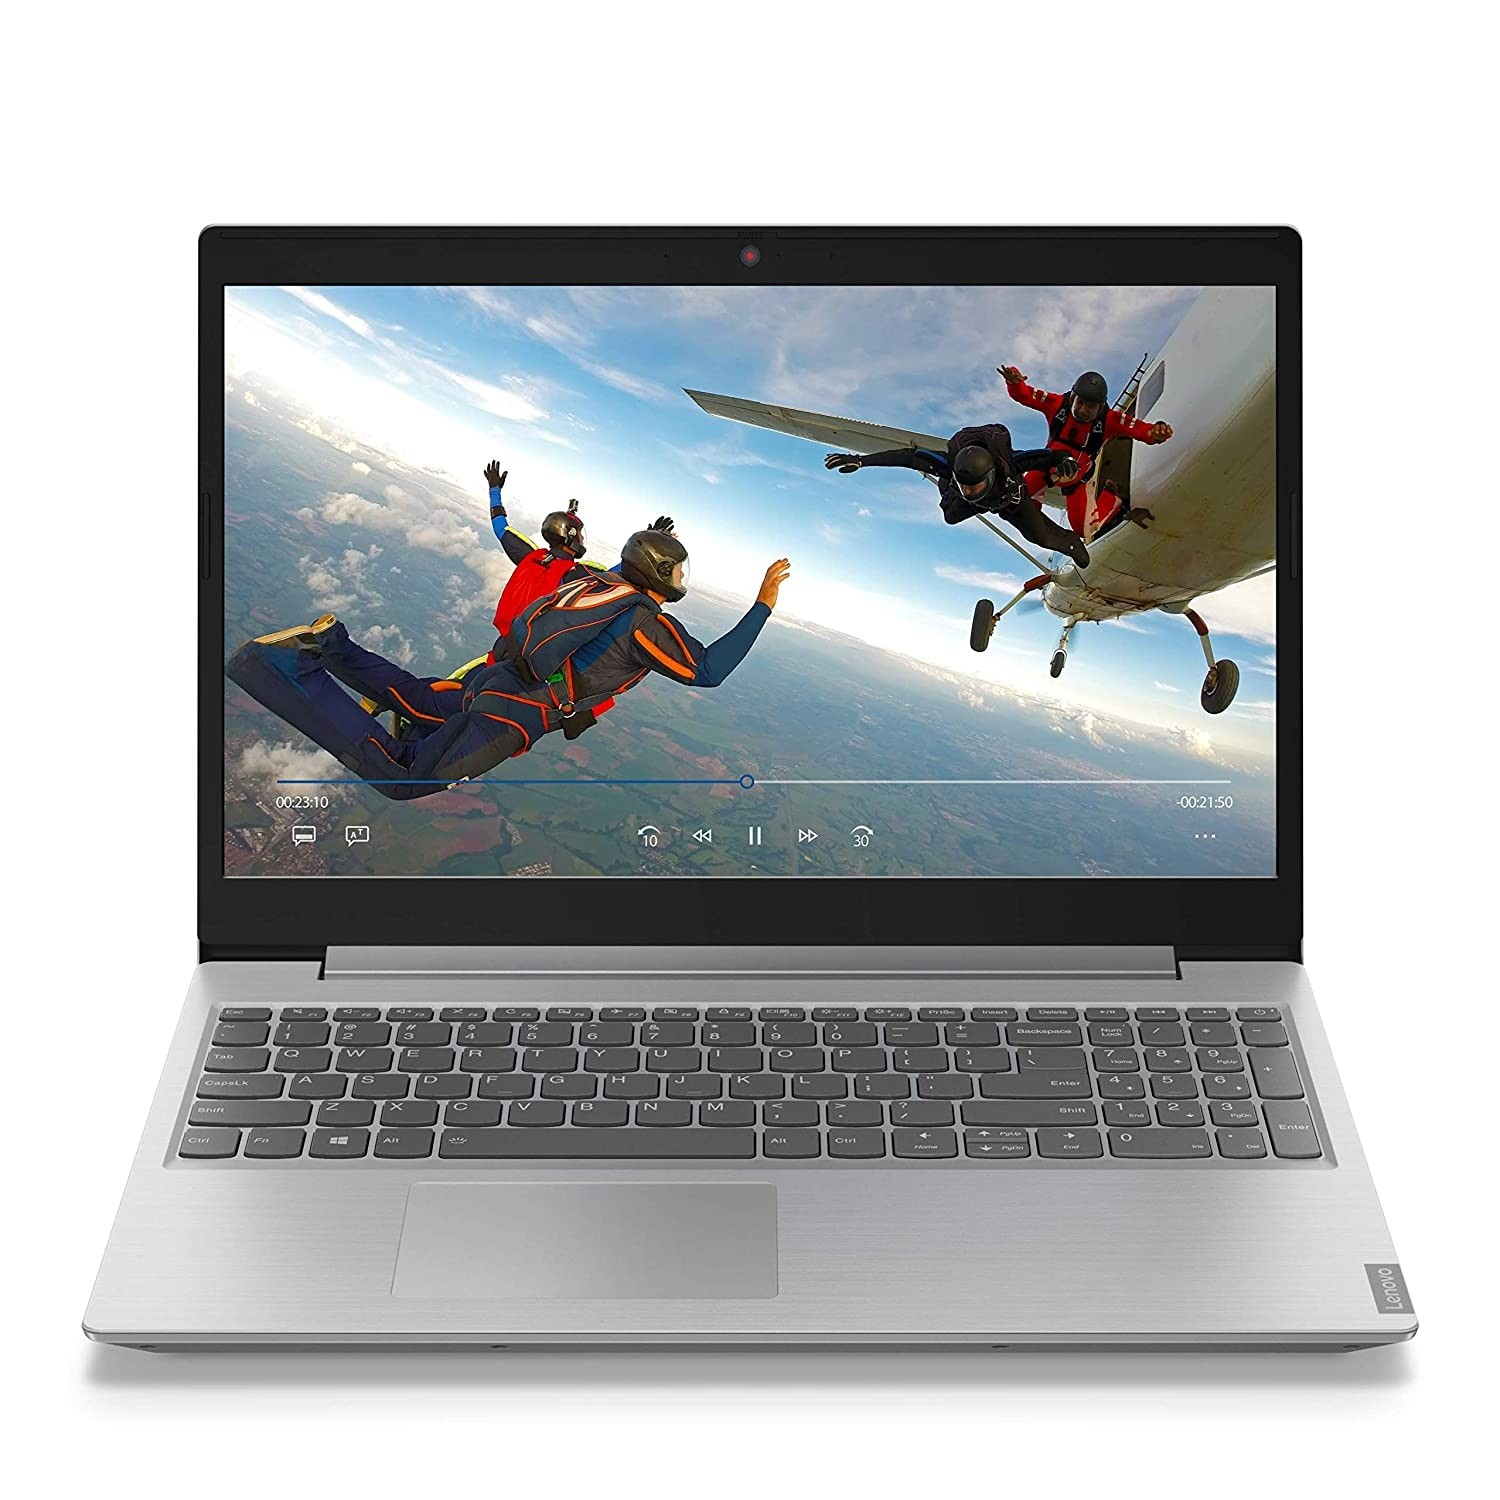 "Refurbished laptops & desktops - Lenovo ideapad L340-15IWL D/81LG0097IN/Intel i5-8265U 1.6GHz/8GB/1TB/15.6"" HD LED/Windows 10 Home SL/Granite_Black"